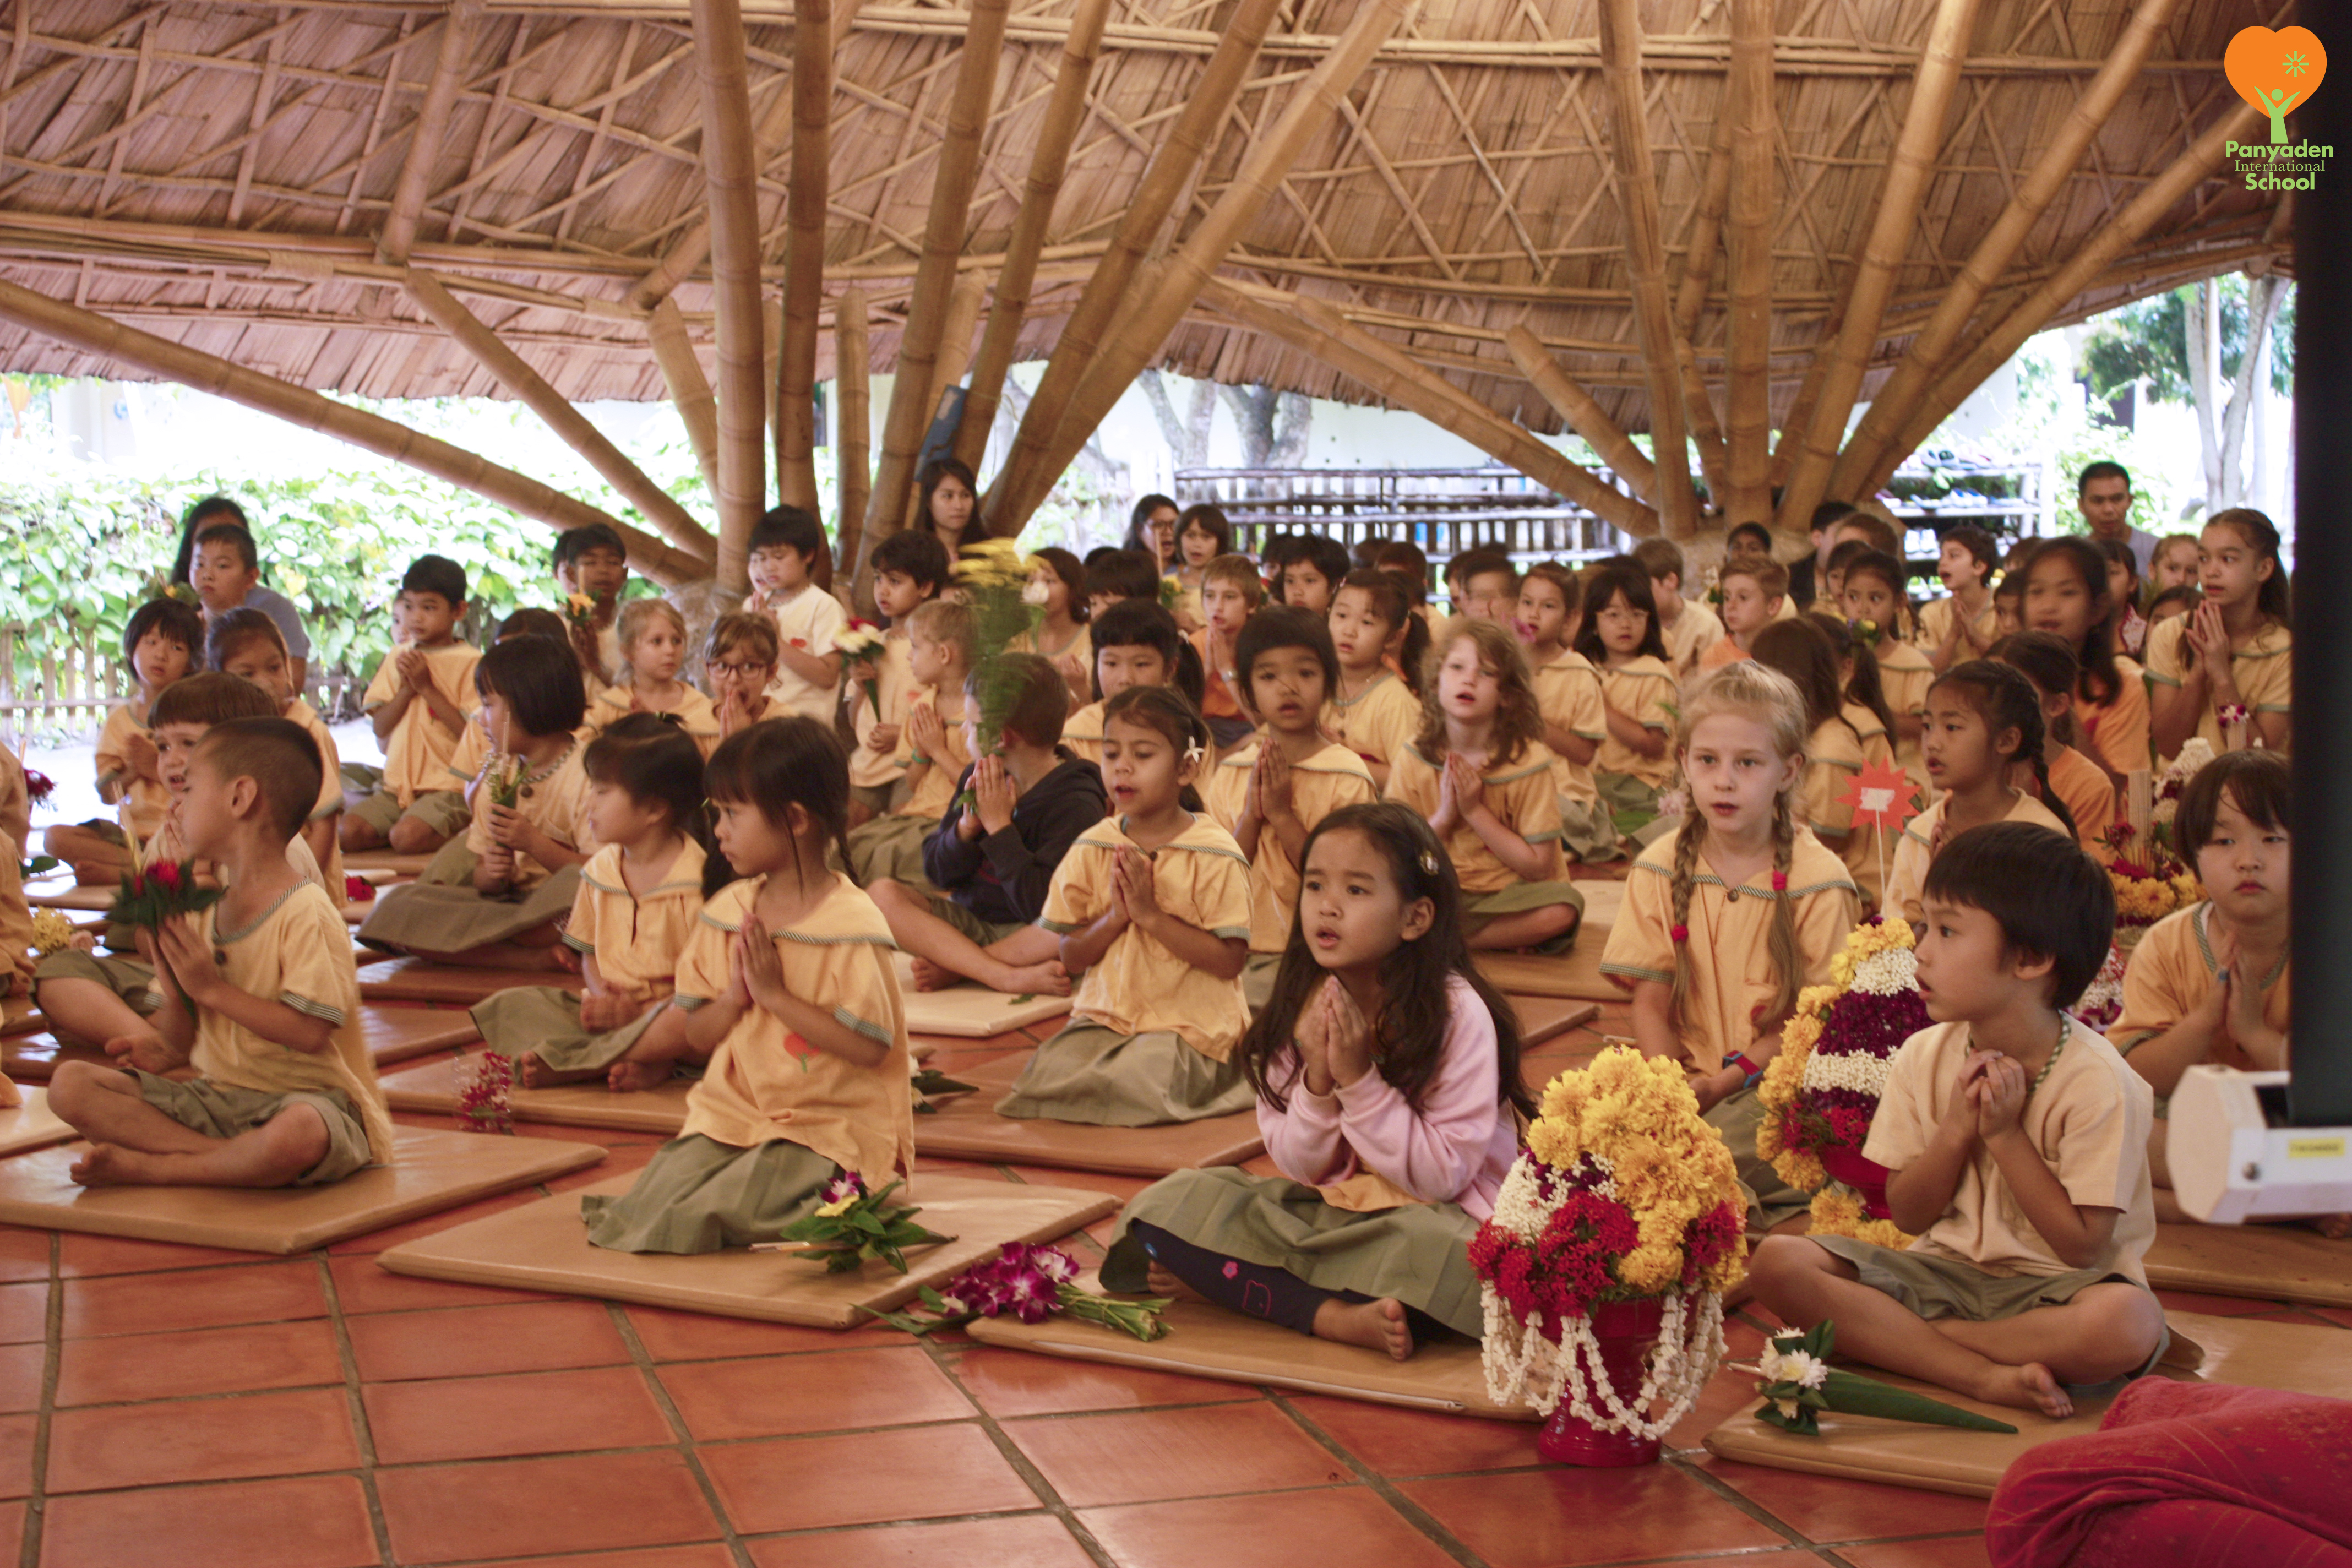 Panyaden students with their flower gifts for teachers, Wai Kru Day 2016